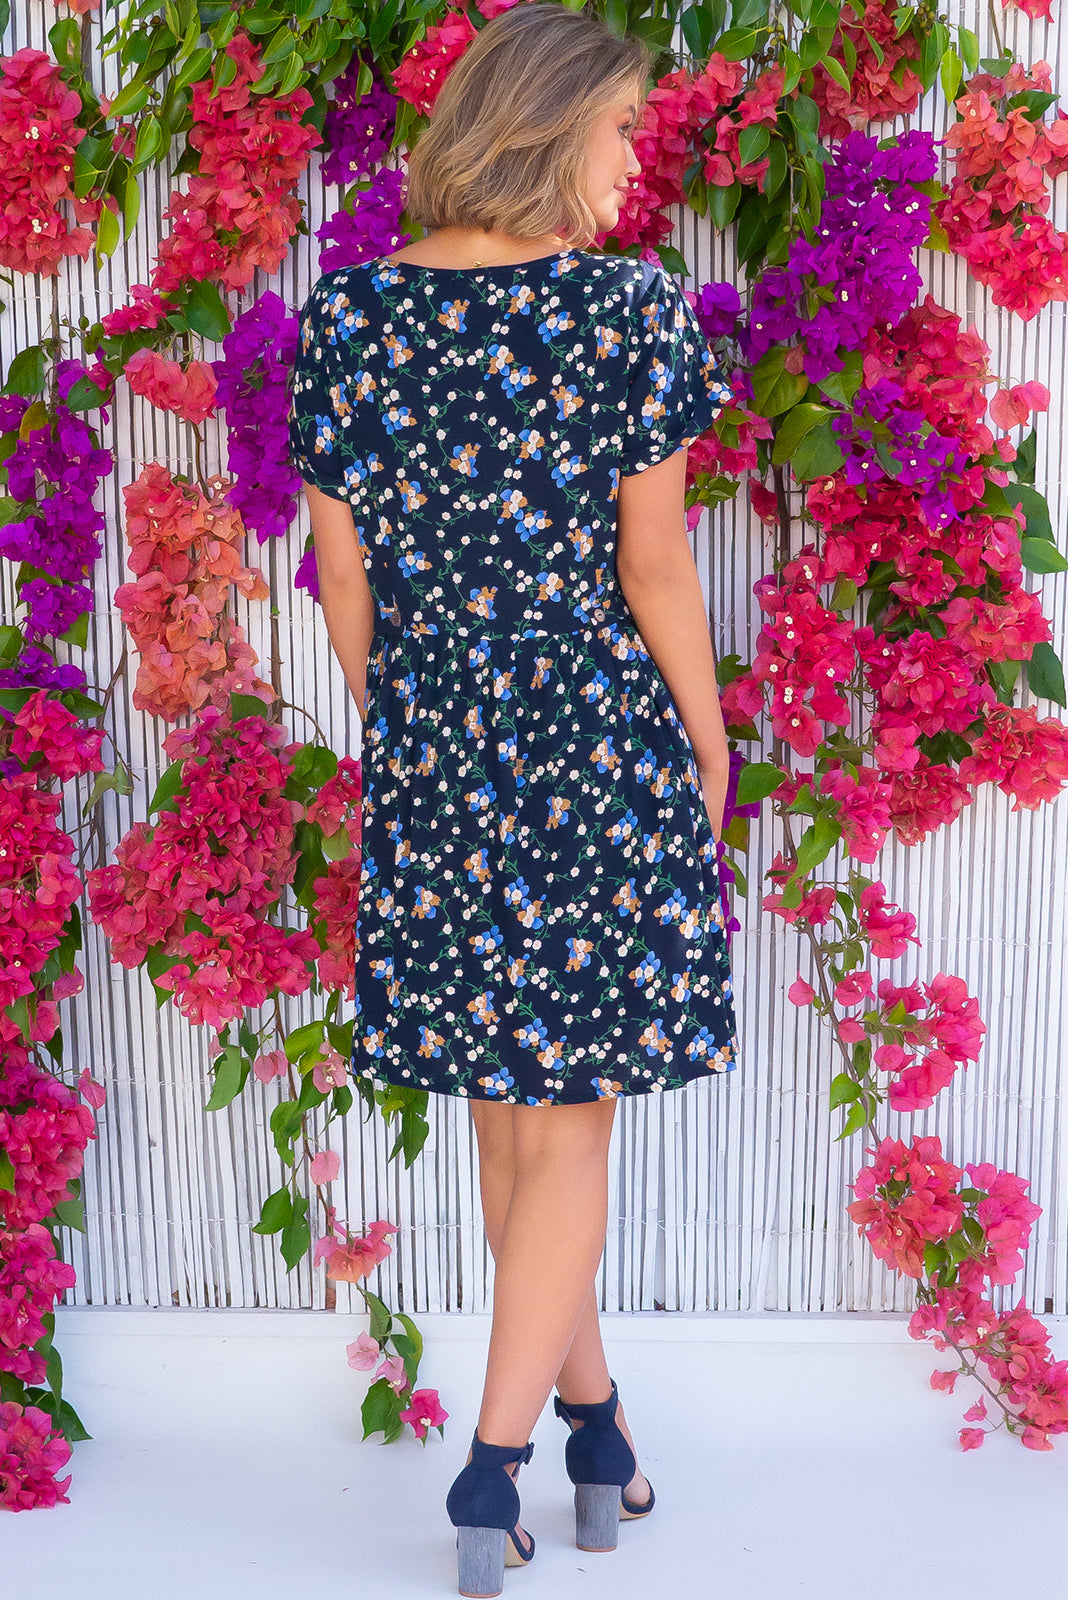 The Blue Moon Blooms Noir Dress is a lightweight loose frock featuring cuffed sleeves, drop waist, buttons and tabs at waist, side pockets and 100% rayon in ink base with floral print.